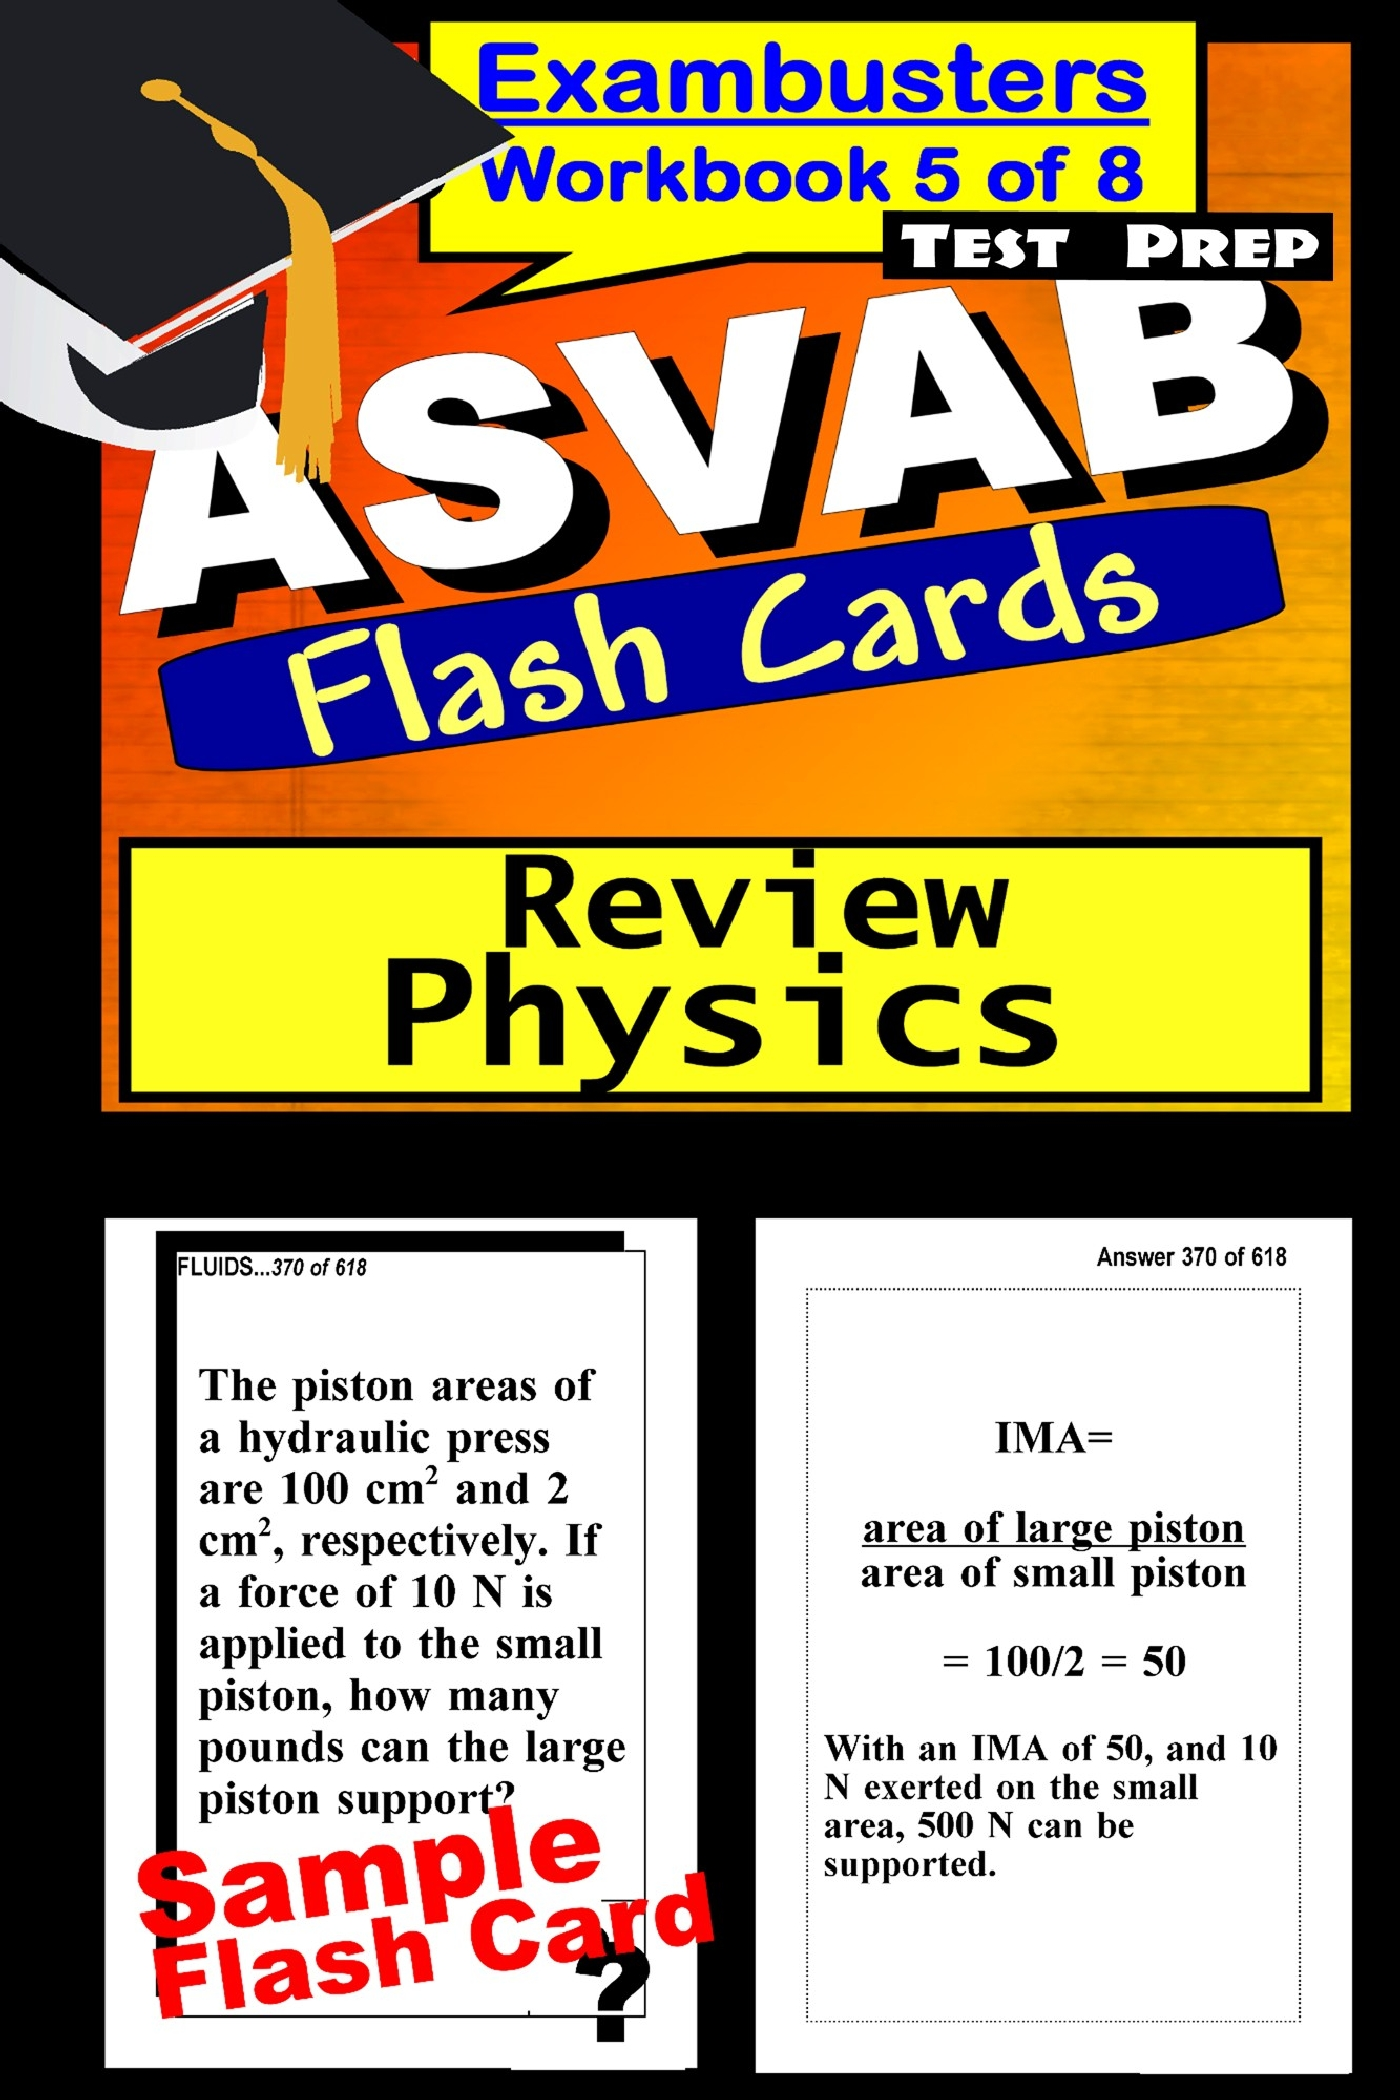 Asvab Test Prep Physics Review Exambusters Flash Cards